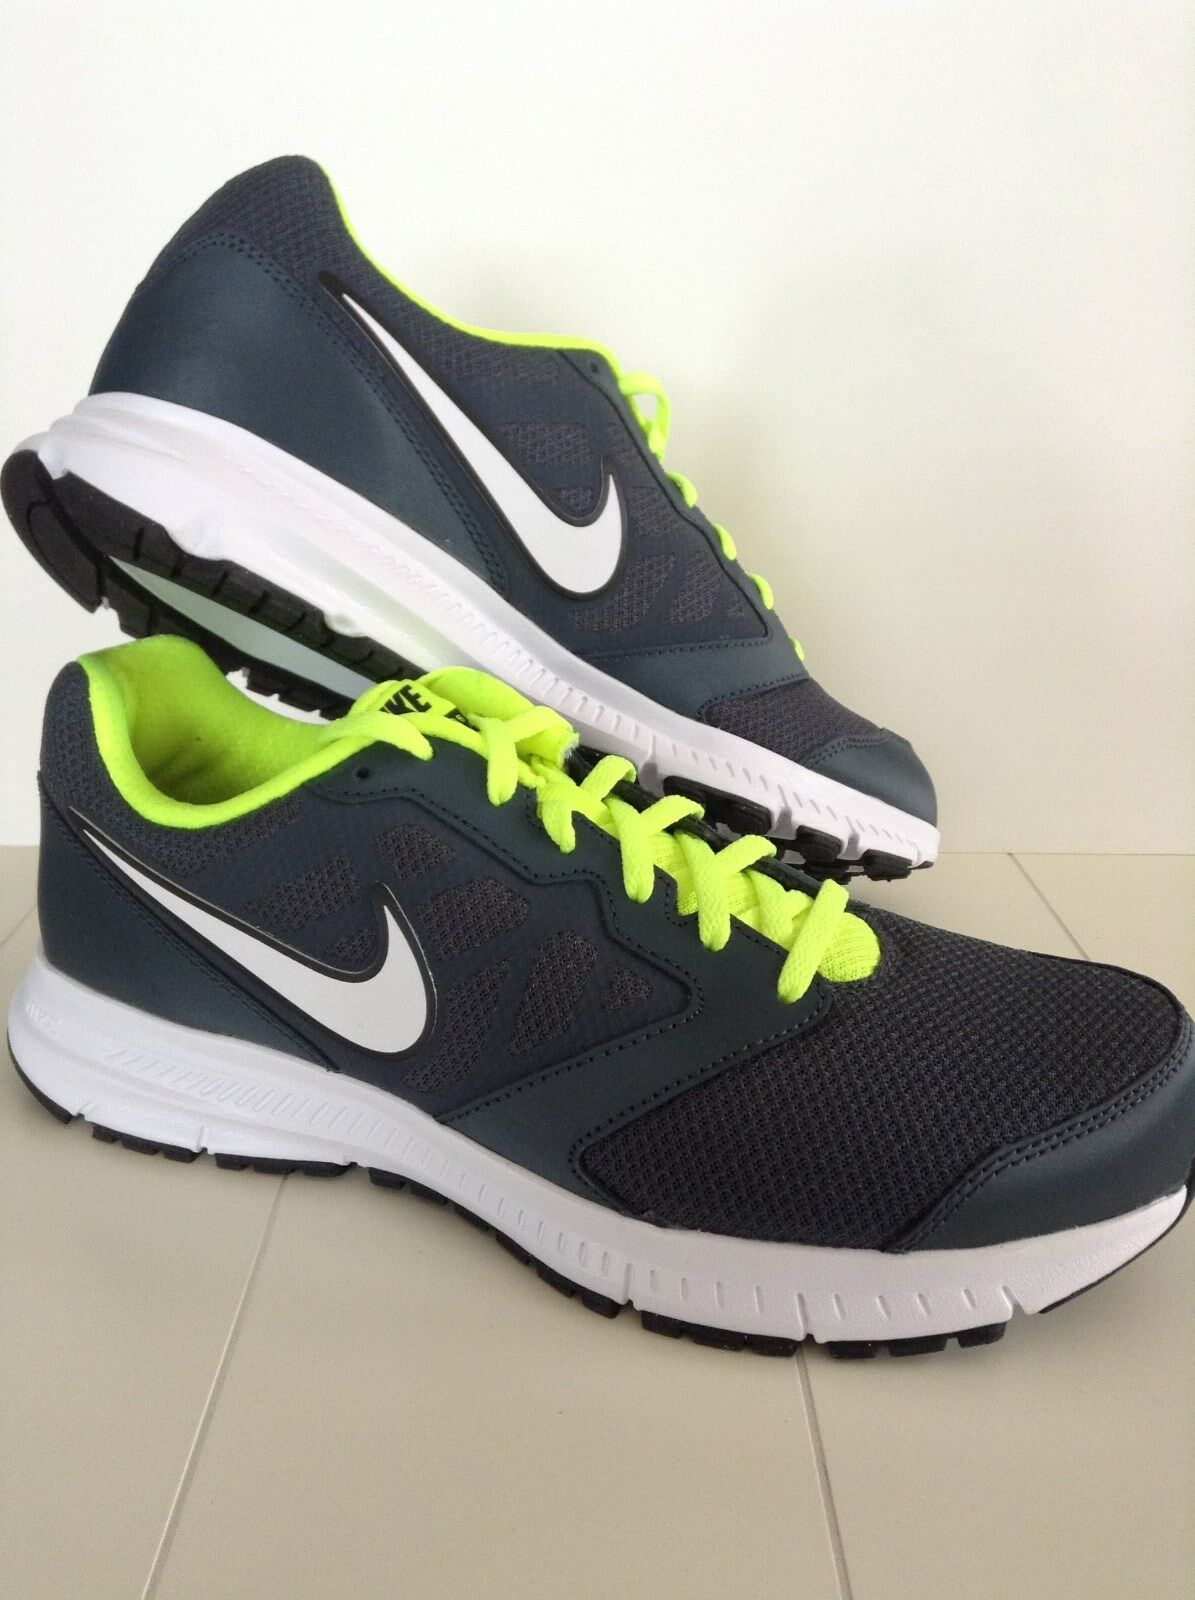 New Nike Mens Sneakers/Shoes Downshefter 6 Grey/White/Volt Sz 9.5, 10 or 11 Mesh The latest discount shoes for men and women